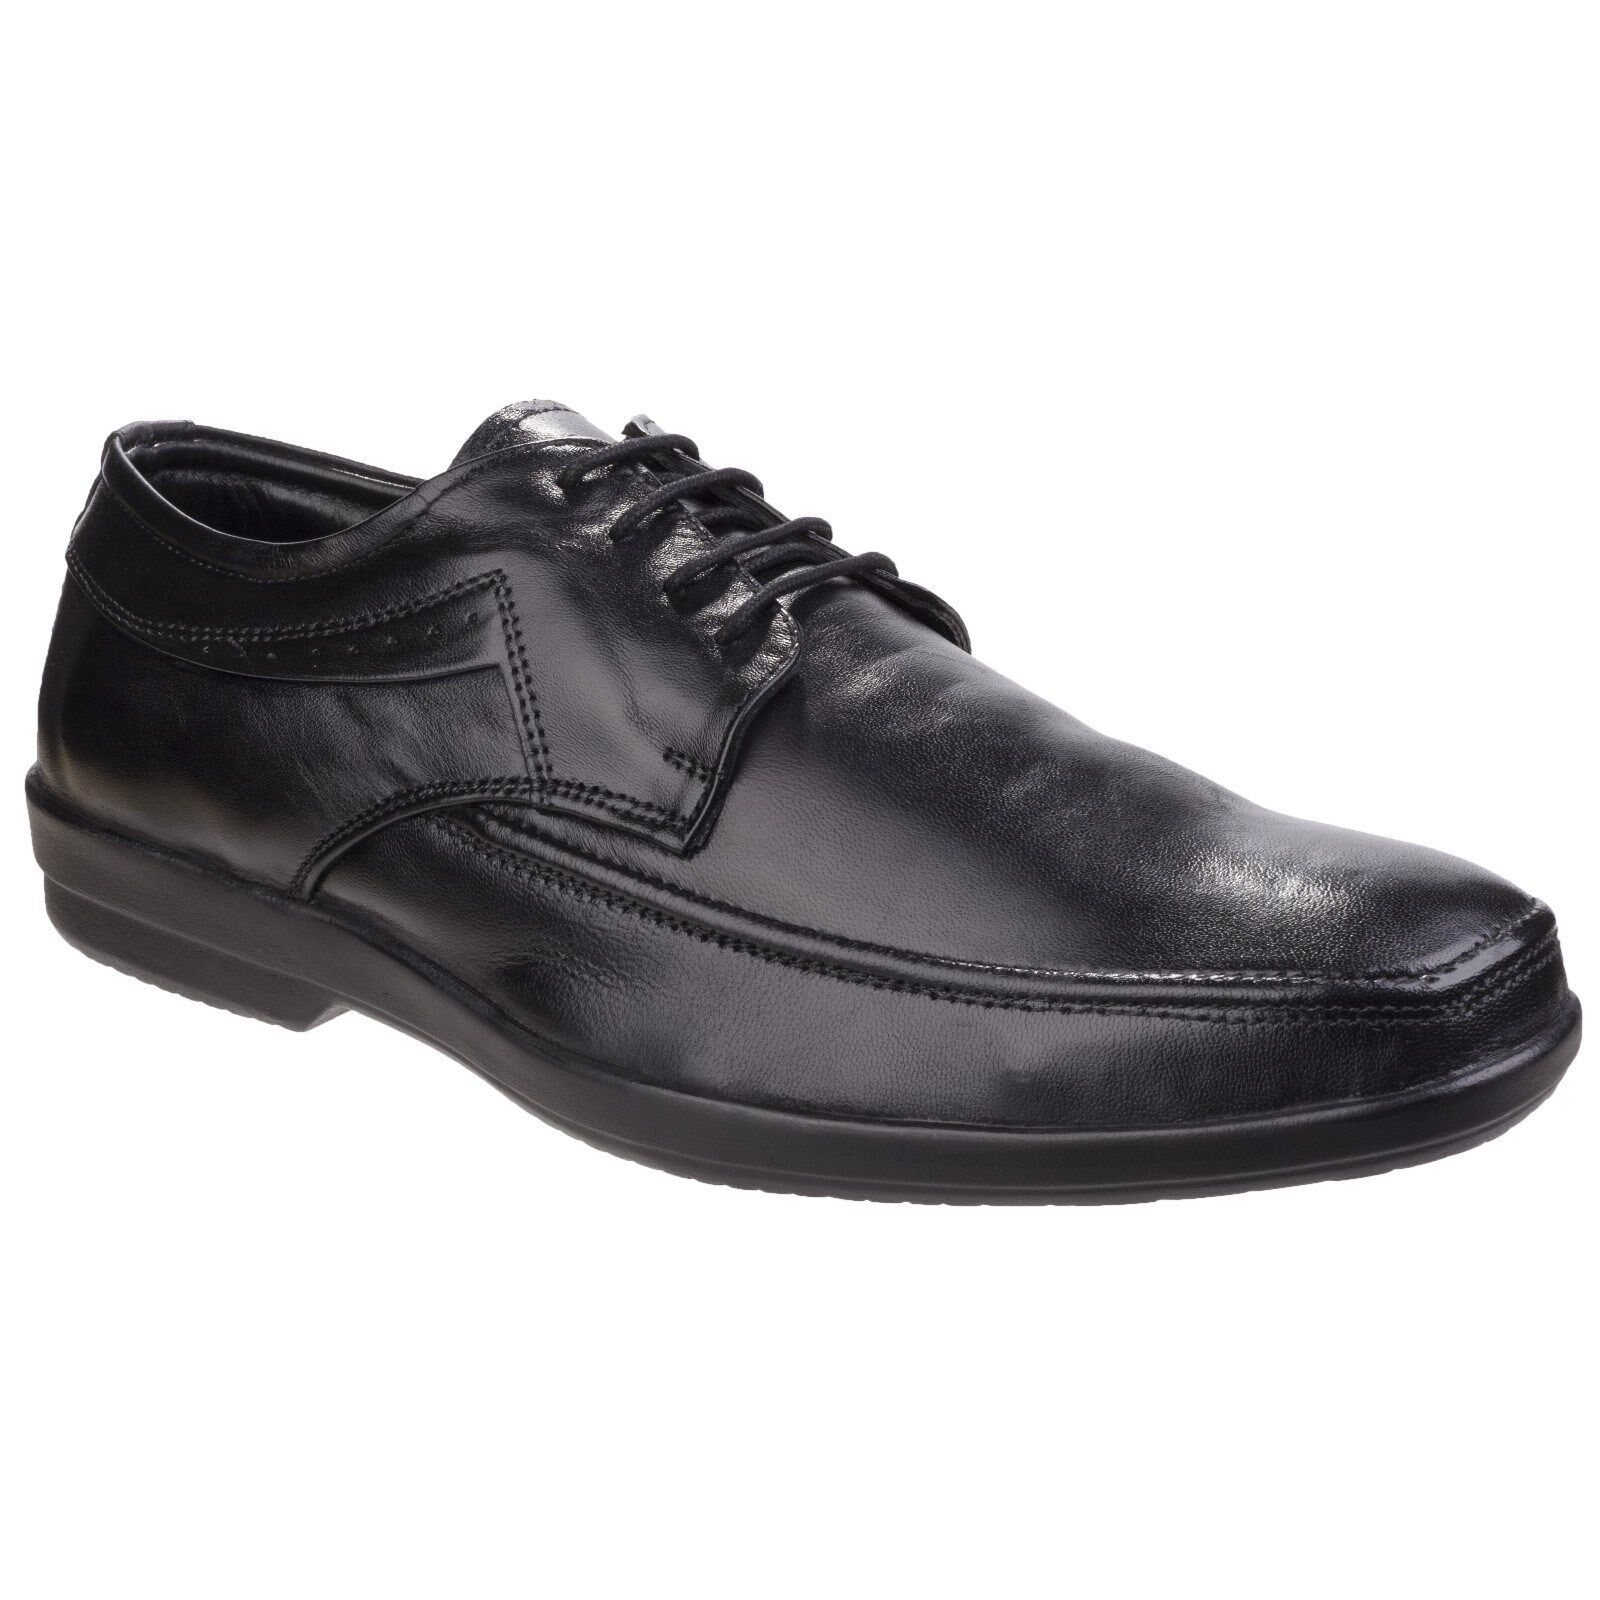 Fleet & Foster Dave Leather Lace Up Oxford Mens Formal shoes